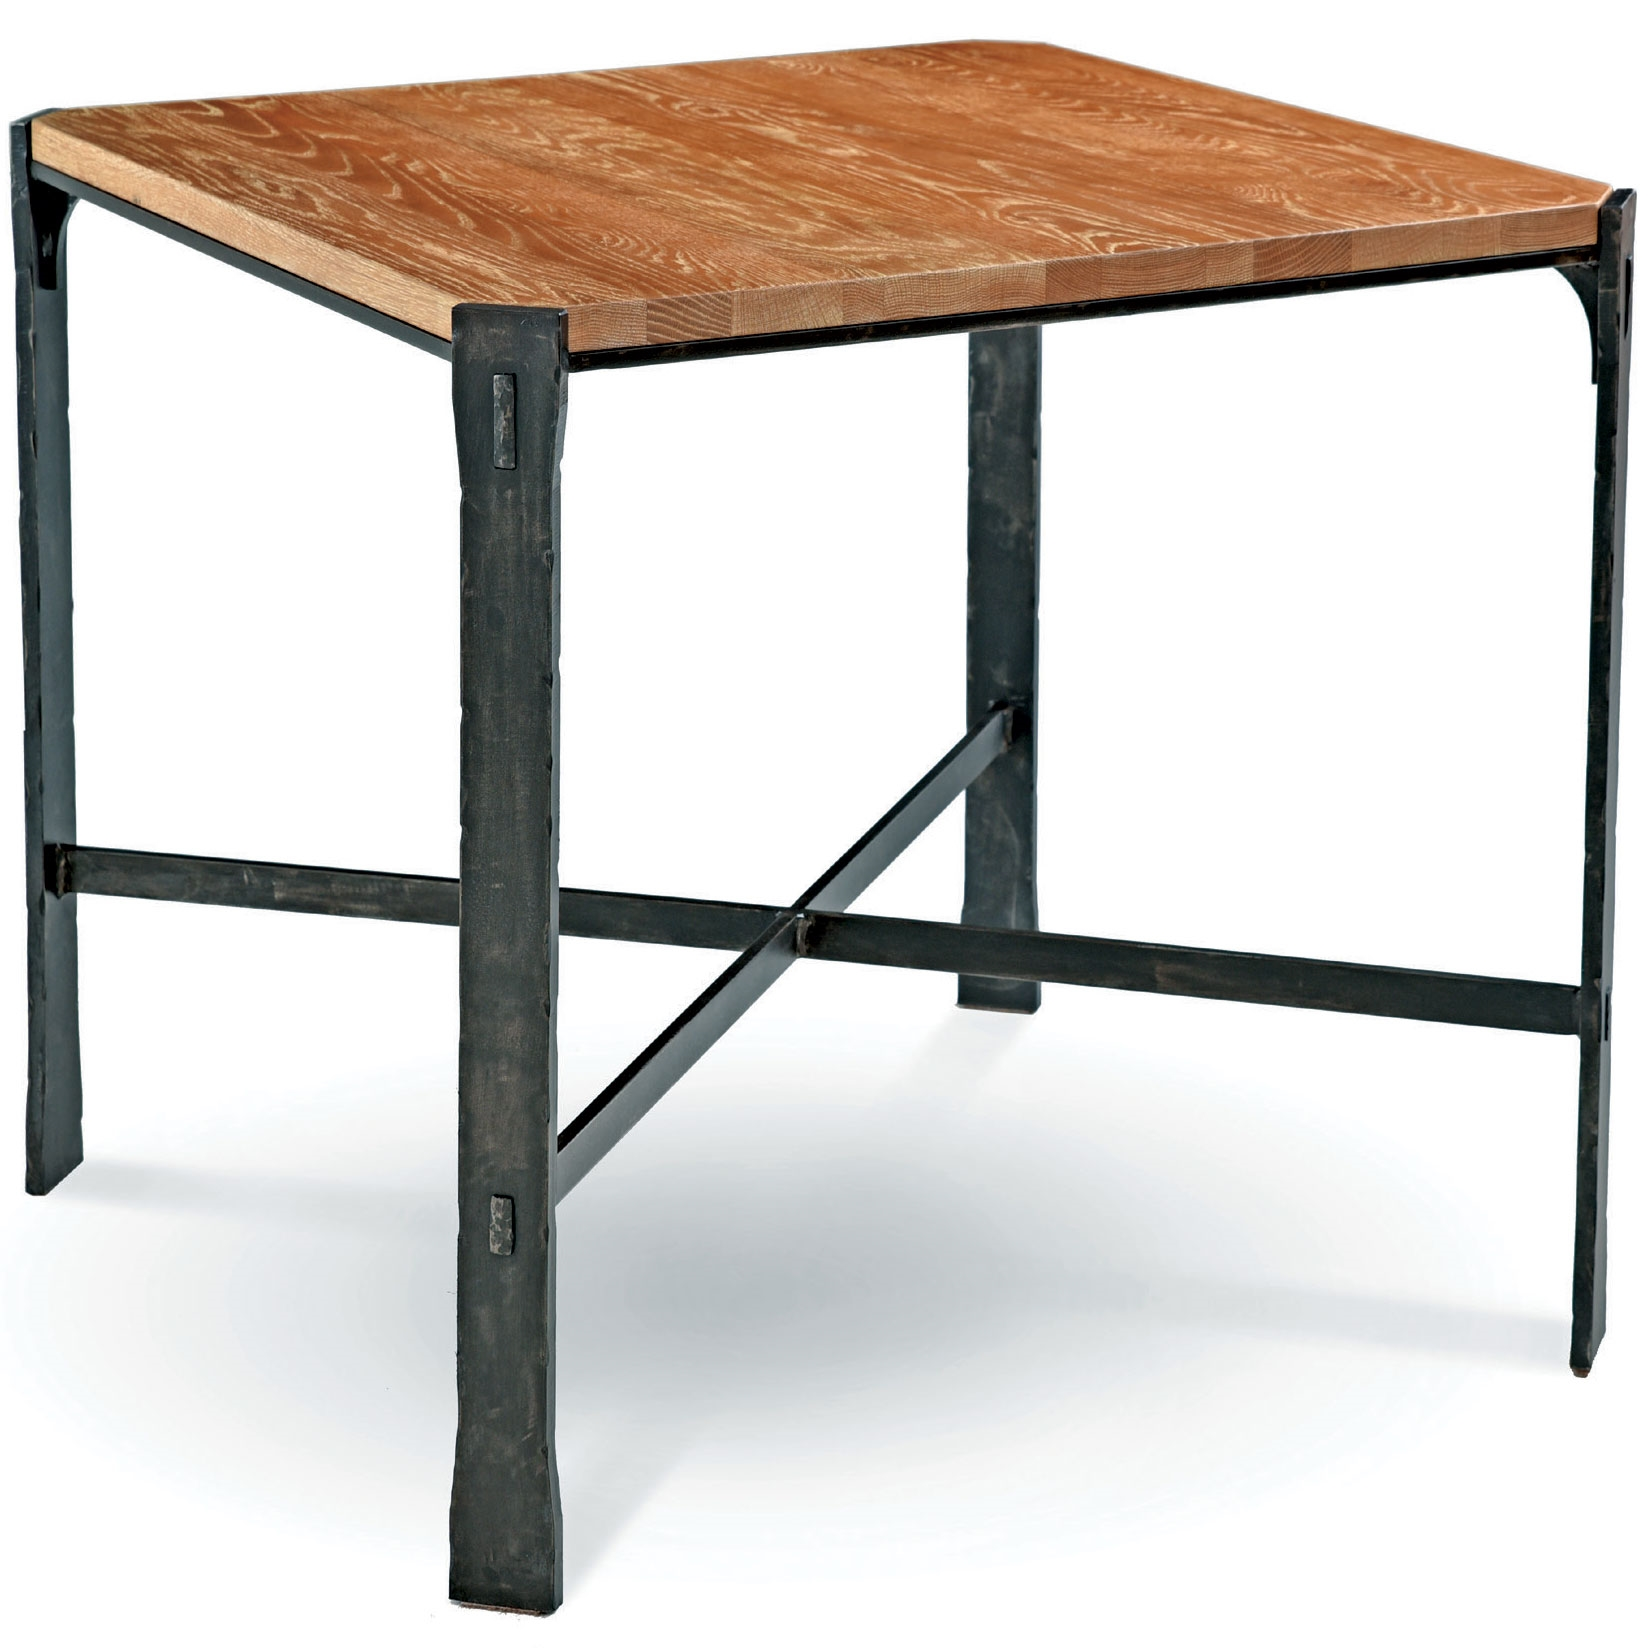 Pictured Is The 36 In Square Transitional Style Woodland Counter Height  Table With Hand